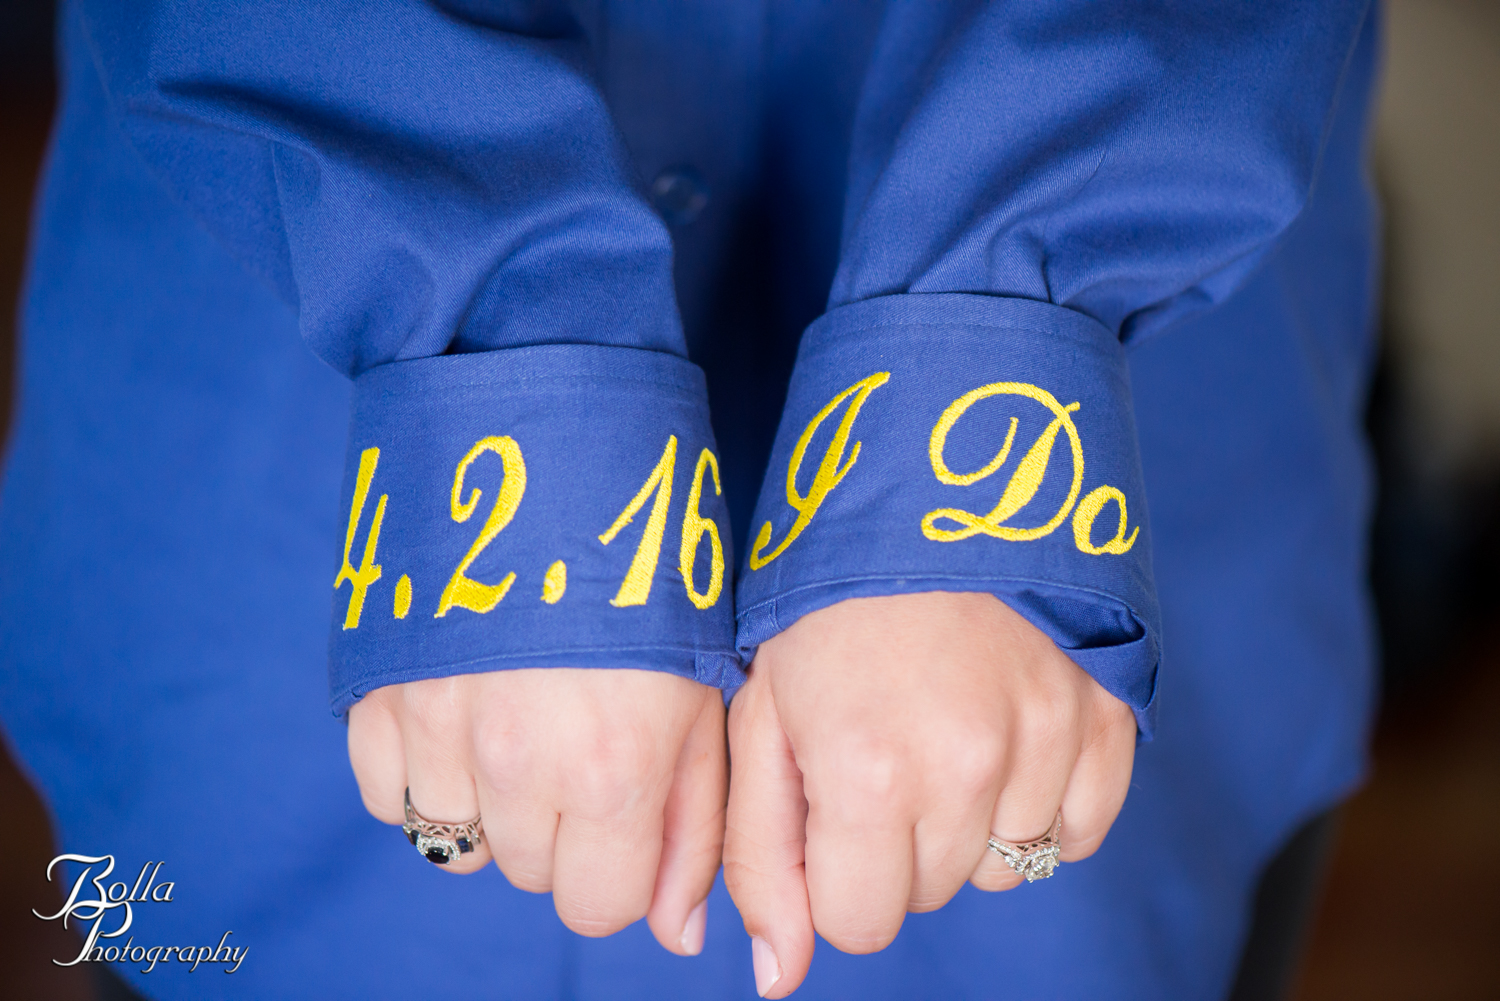 Bolla_Photography_St_Louis_wedding_photographer_Morgando_Blues_hockey_Botanical_Gardens_spring-0030.jpg